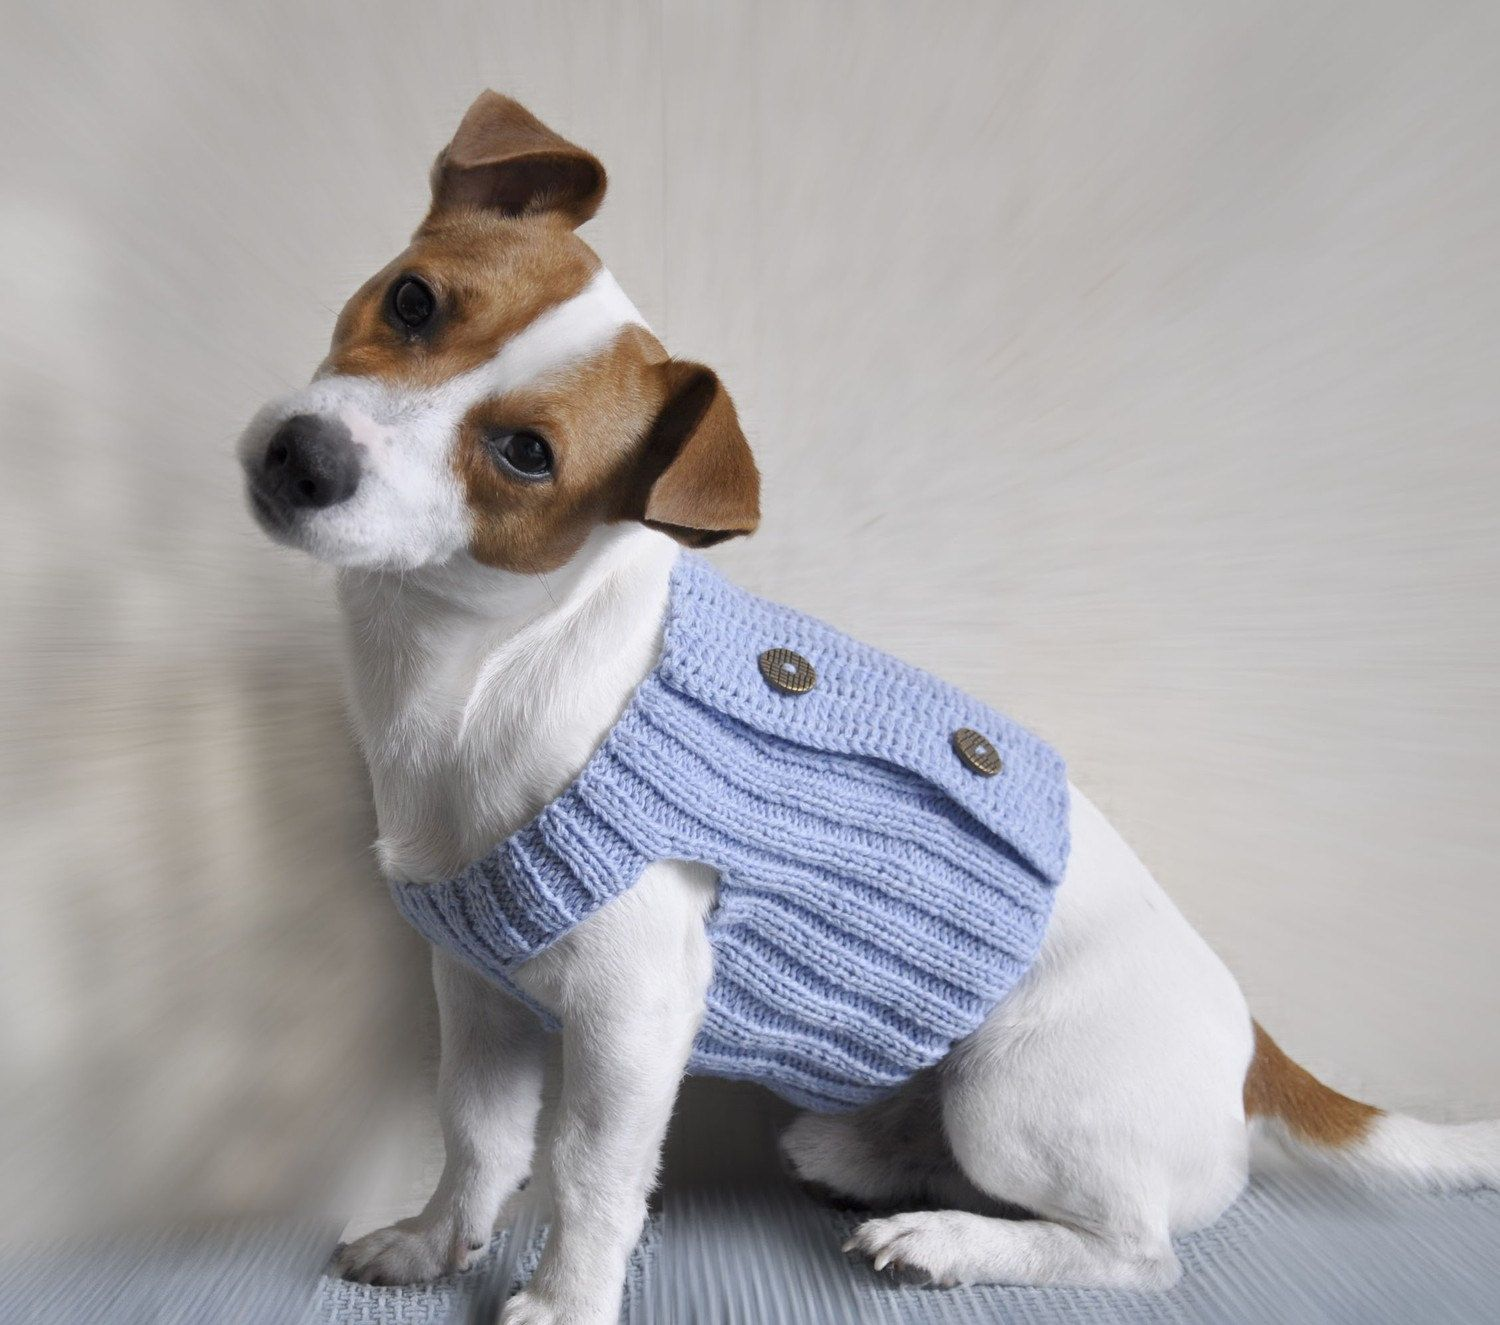 Knitting Patterns For Dogs Clothes : Knitting Pattern, Dog Sweater Pattern, Knit Dog Sweater Pattern, Dog Clothes ...